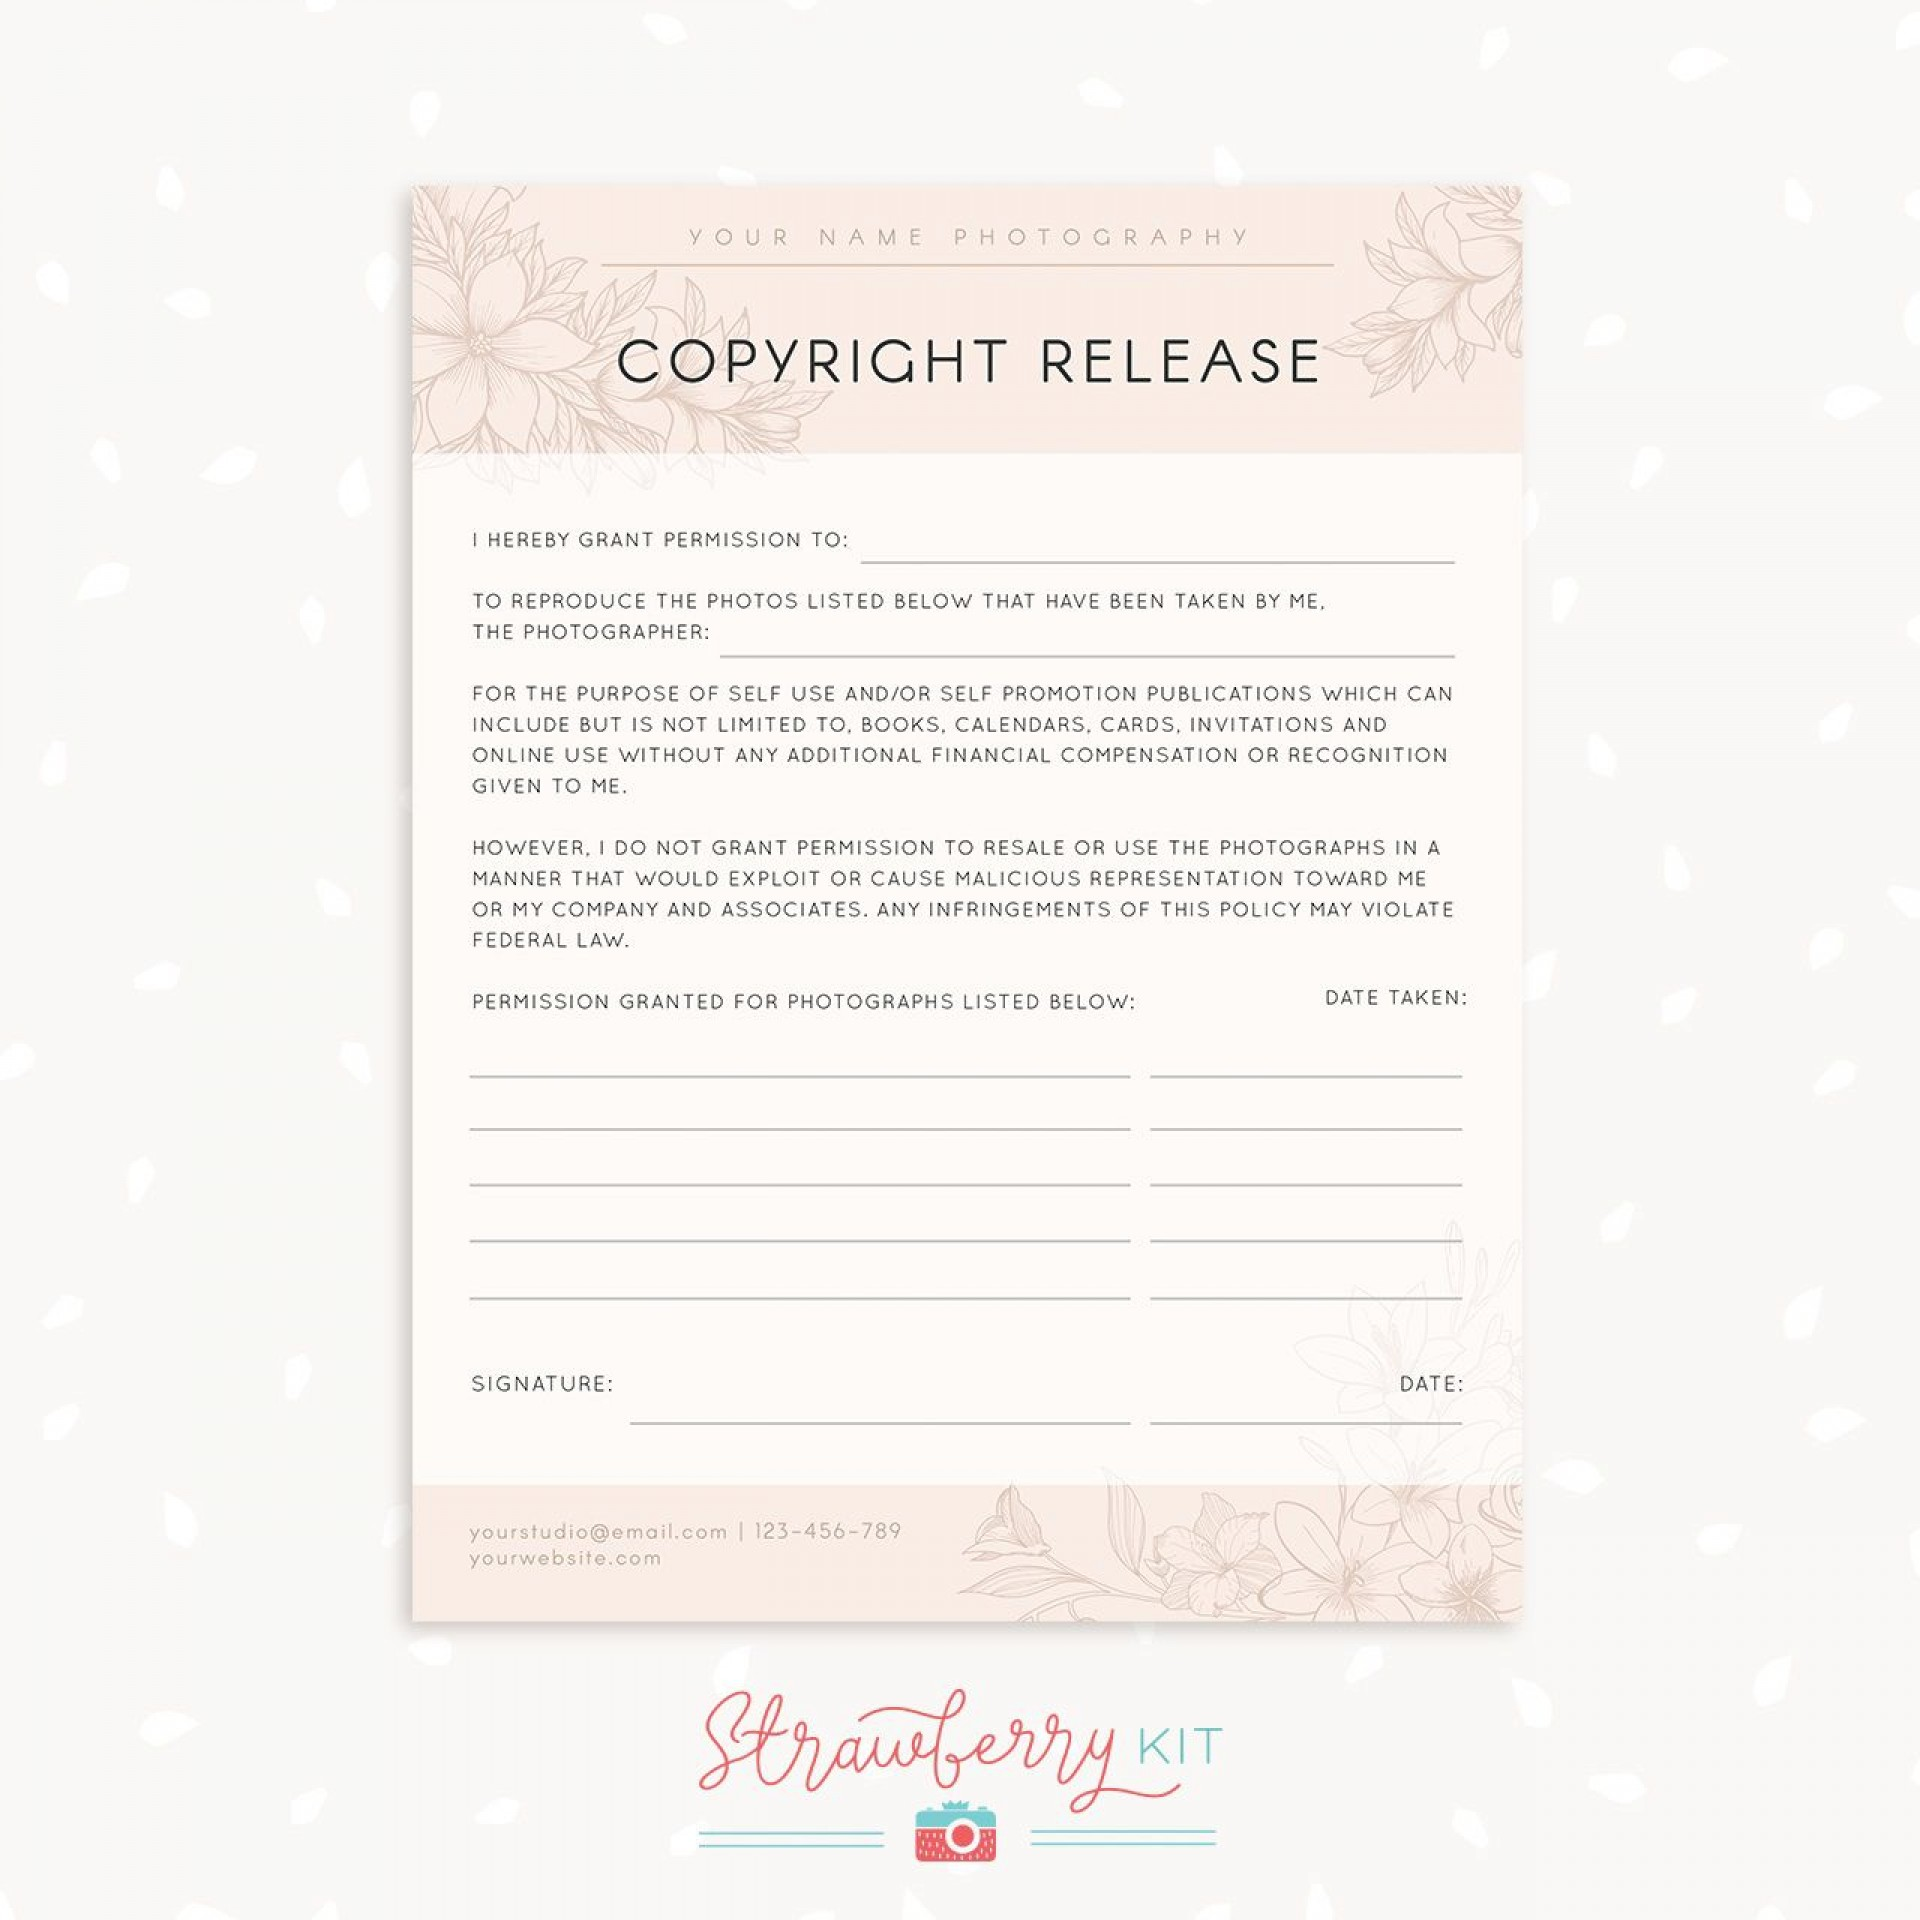 001 Stirring Photography Release Form Template Photo  Image Australia Canada1920